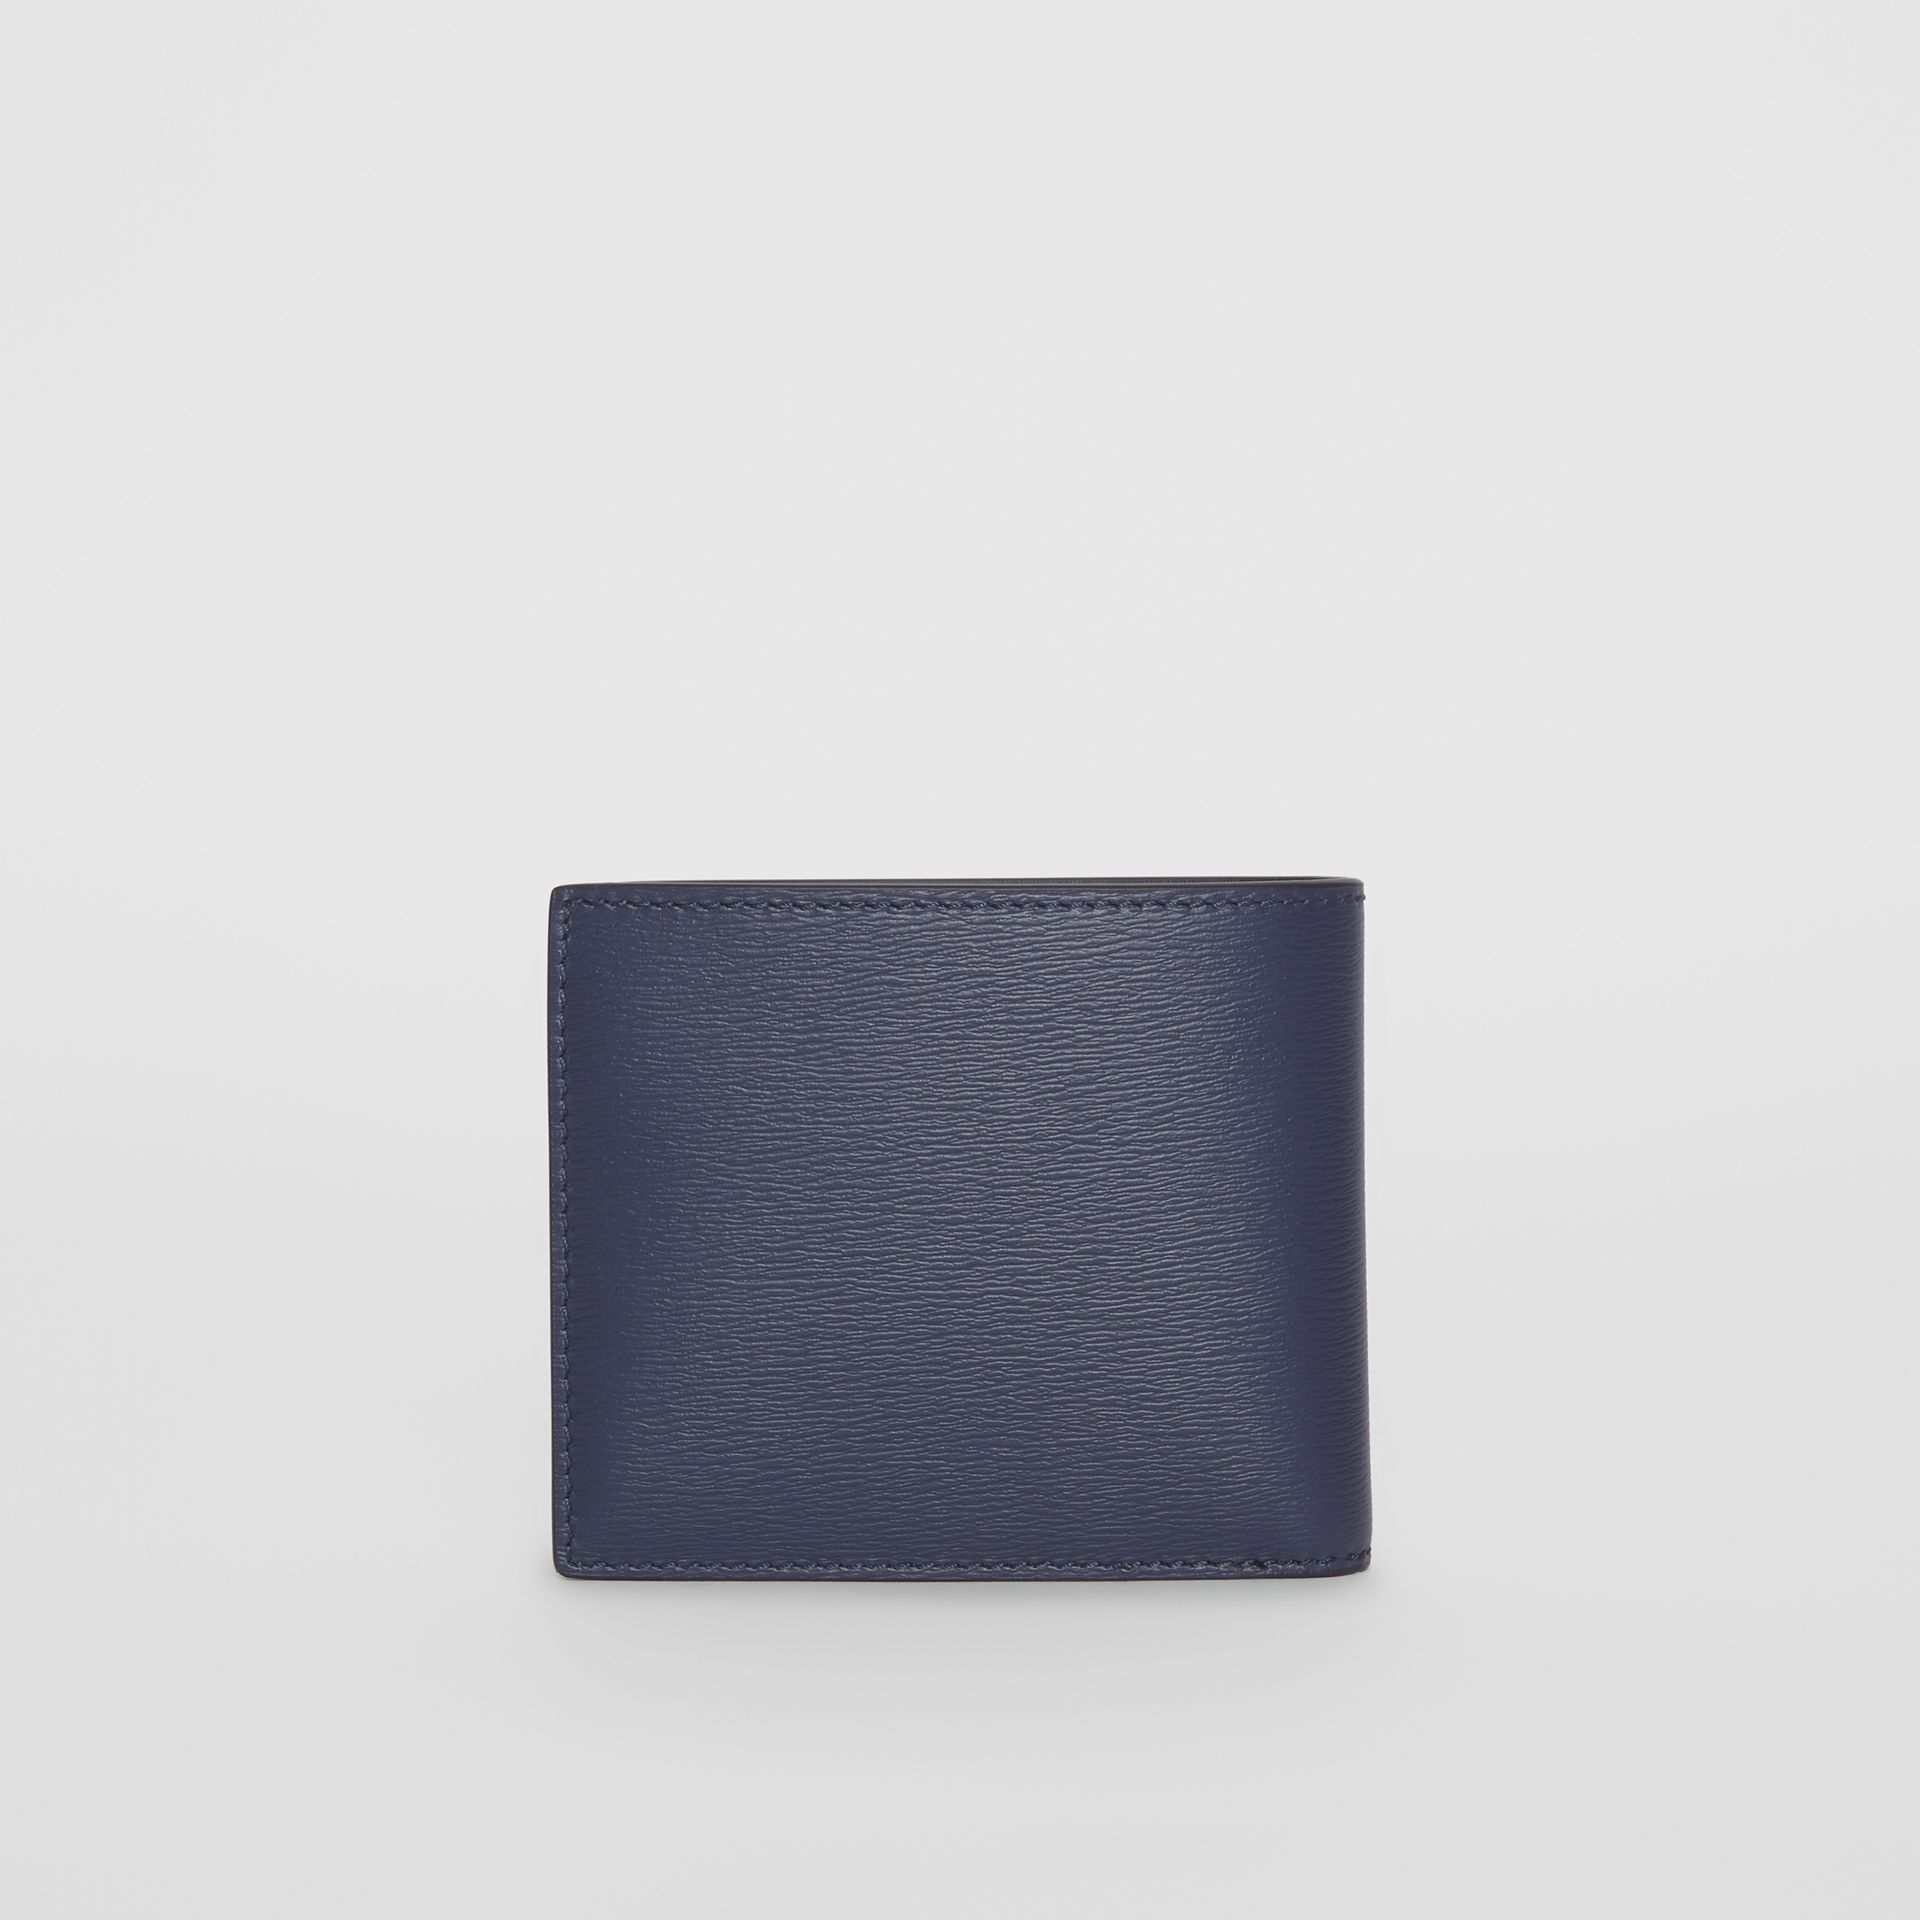 London Leather Bifold Wallet with ID Card Case in Navy - Men | Burberry United States - gallery image 4